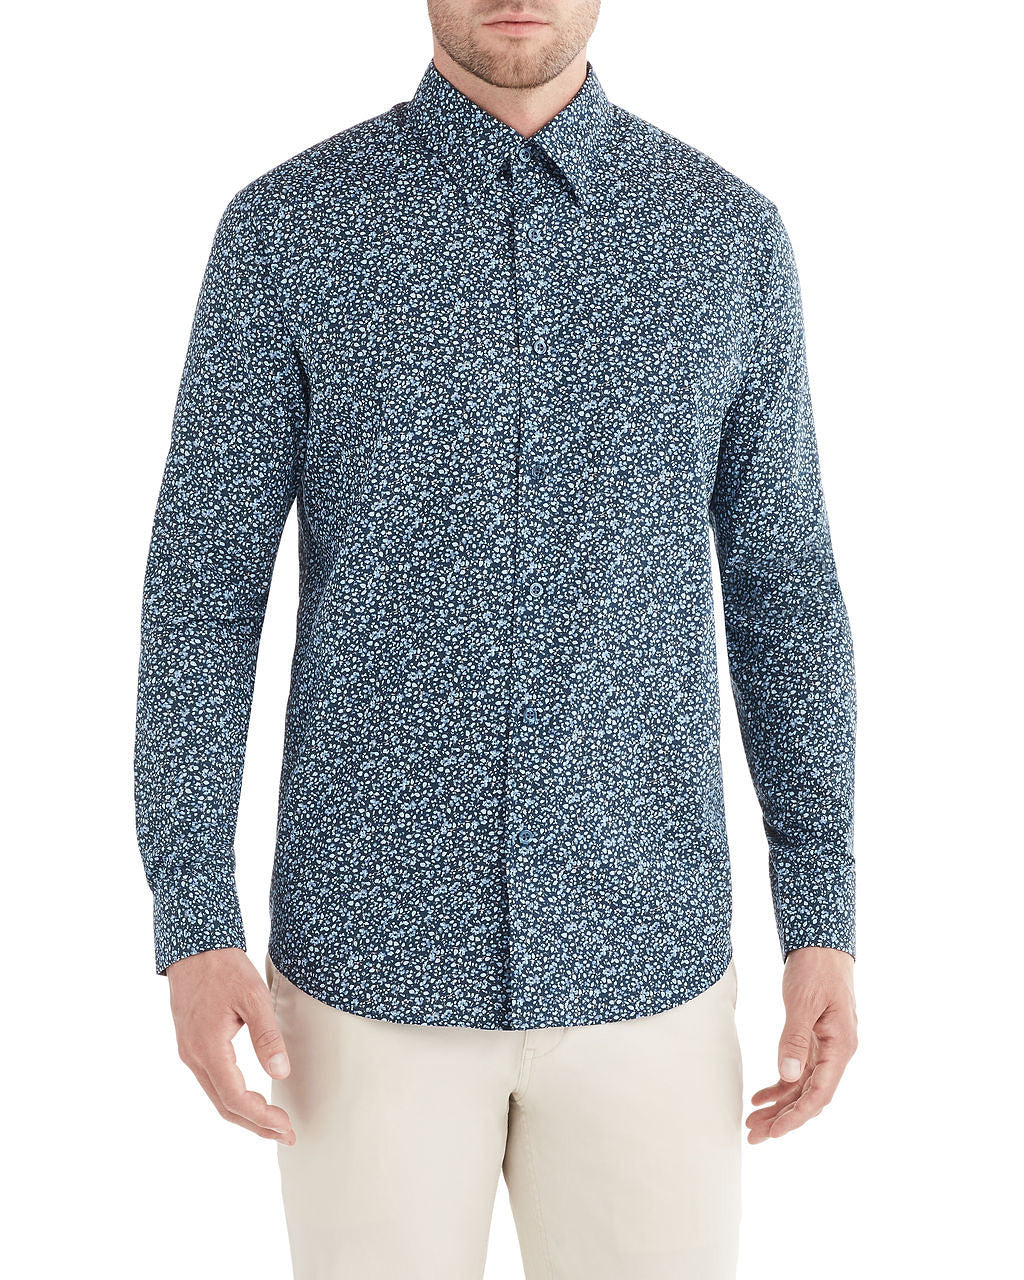 Long-Sleeve Tonal Floral Print Shirt - Navy